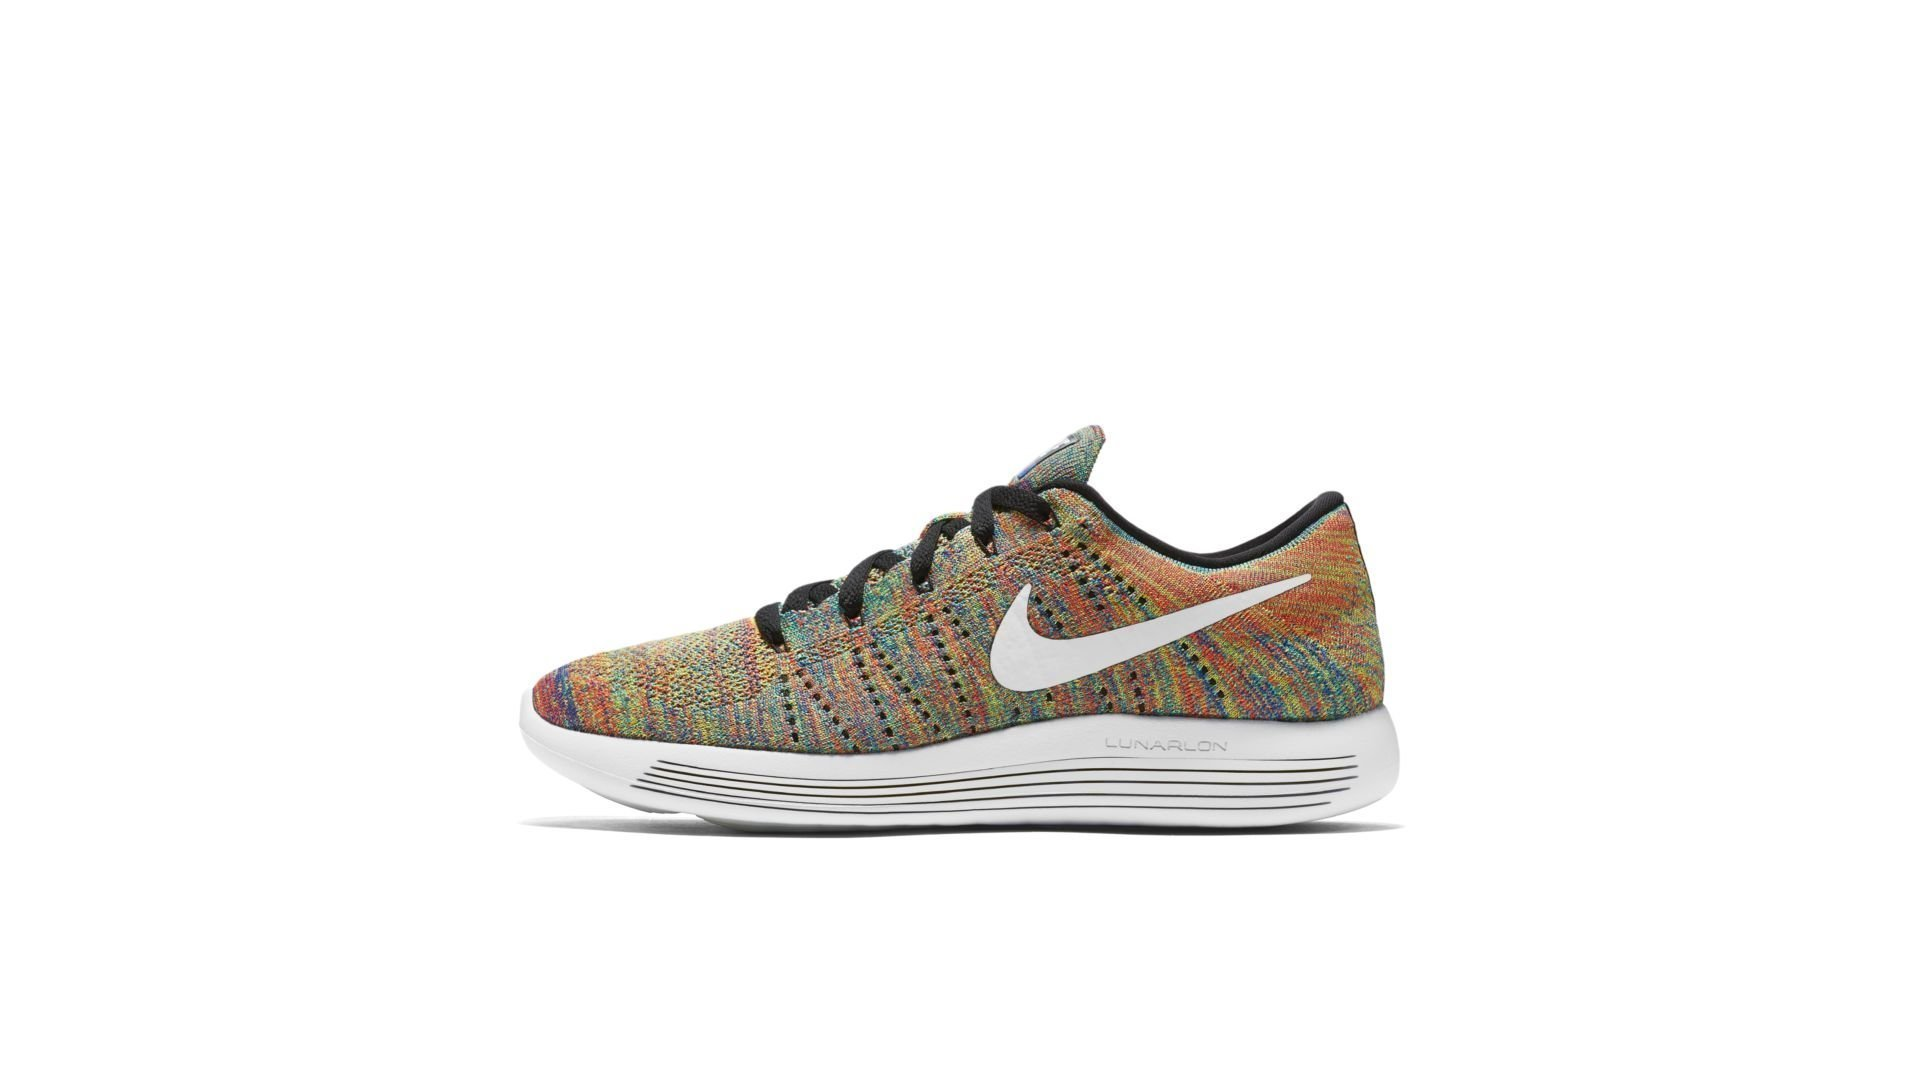 Nike LunarEpic Flyknit Low Multi-Color (843764-004)